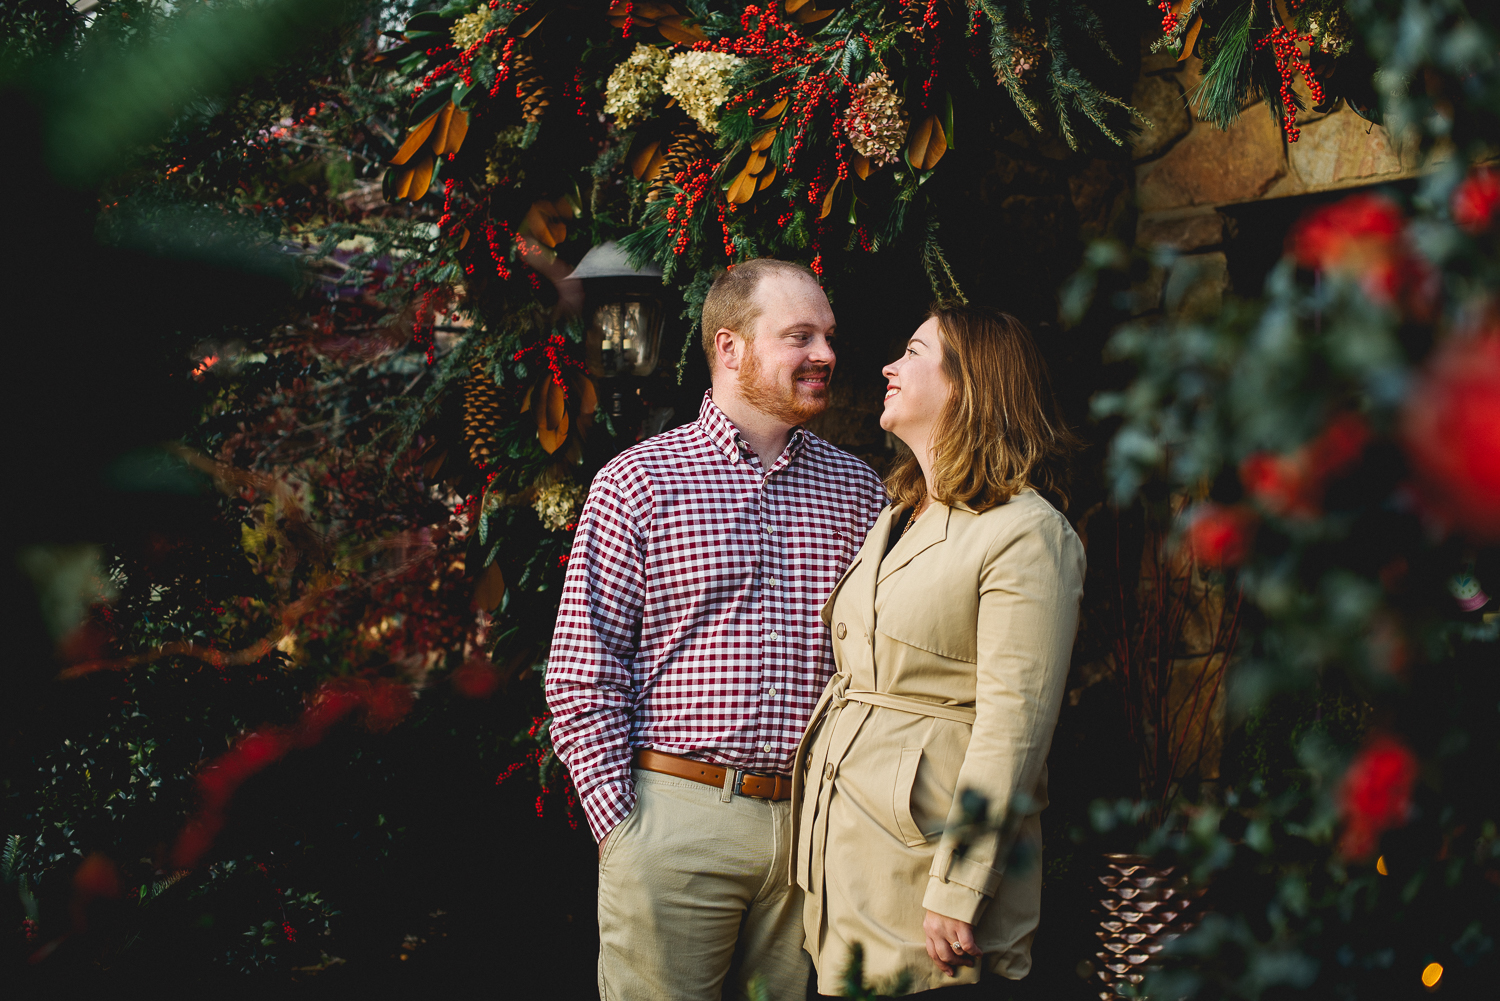 Lansdale-pennsylvania-engagement-photographer-the-rhoads-garden13.jpg